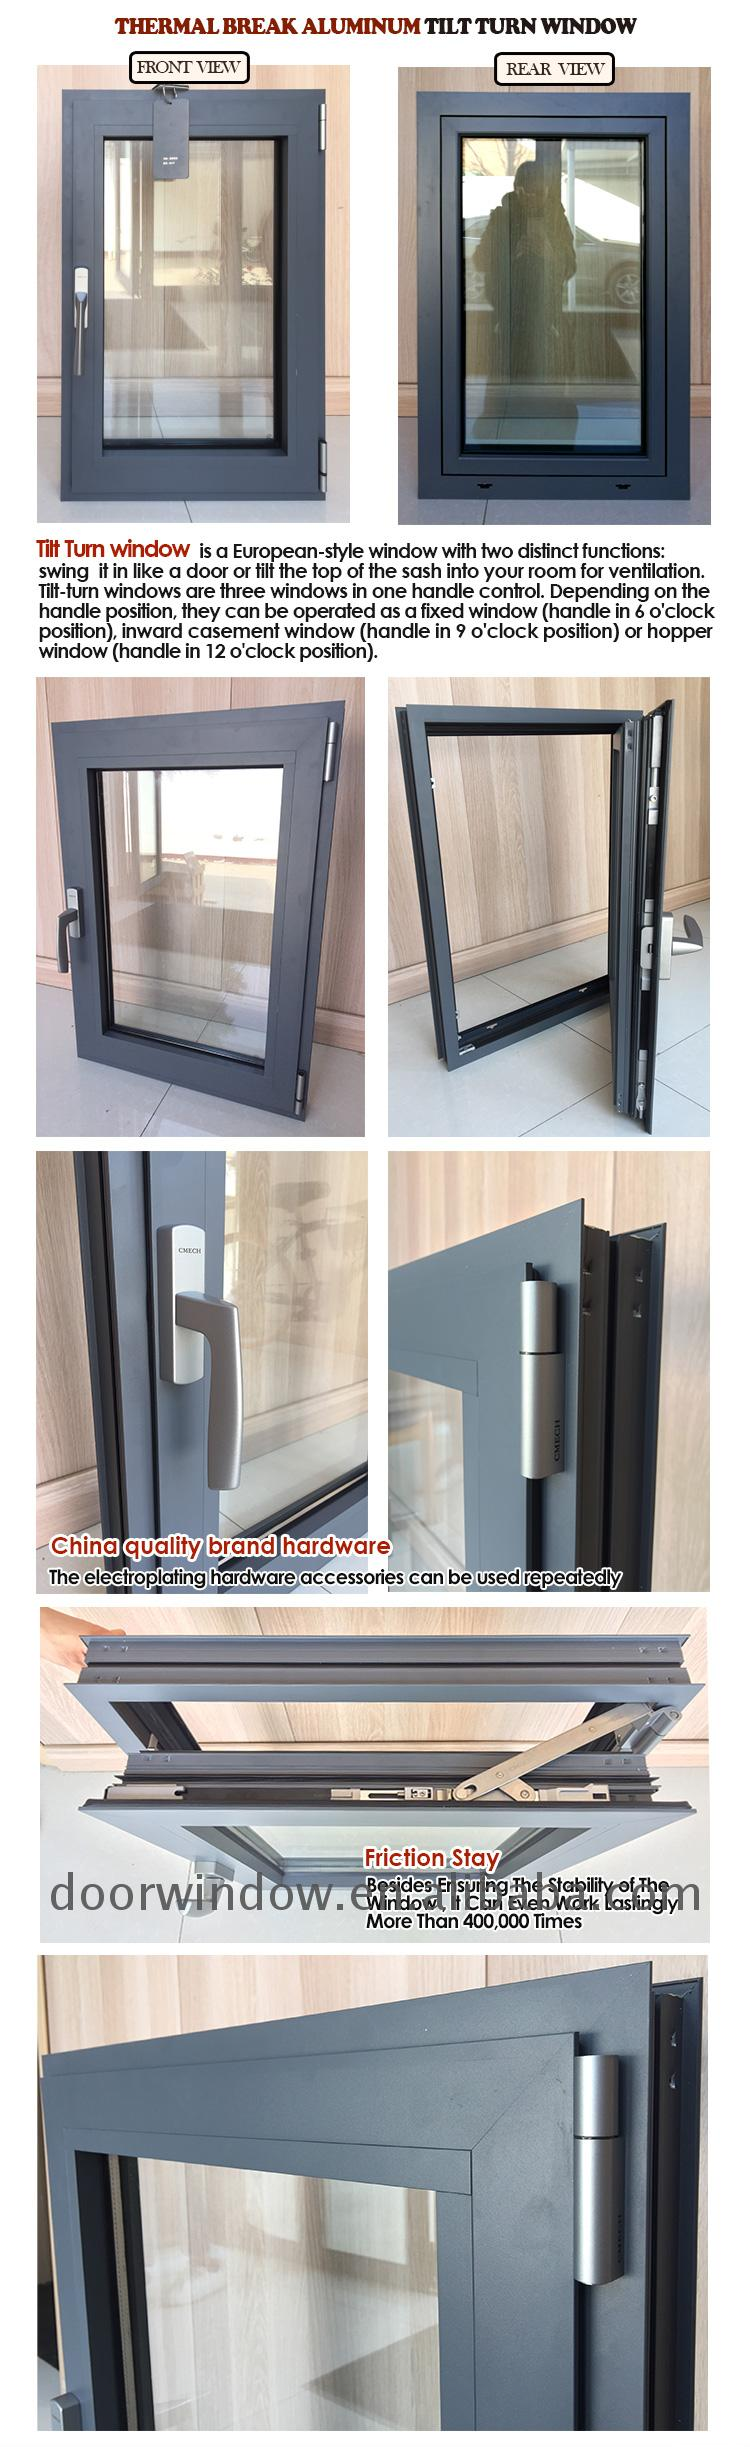 Thermal-break aluminum windows thermal break window security